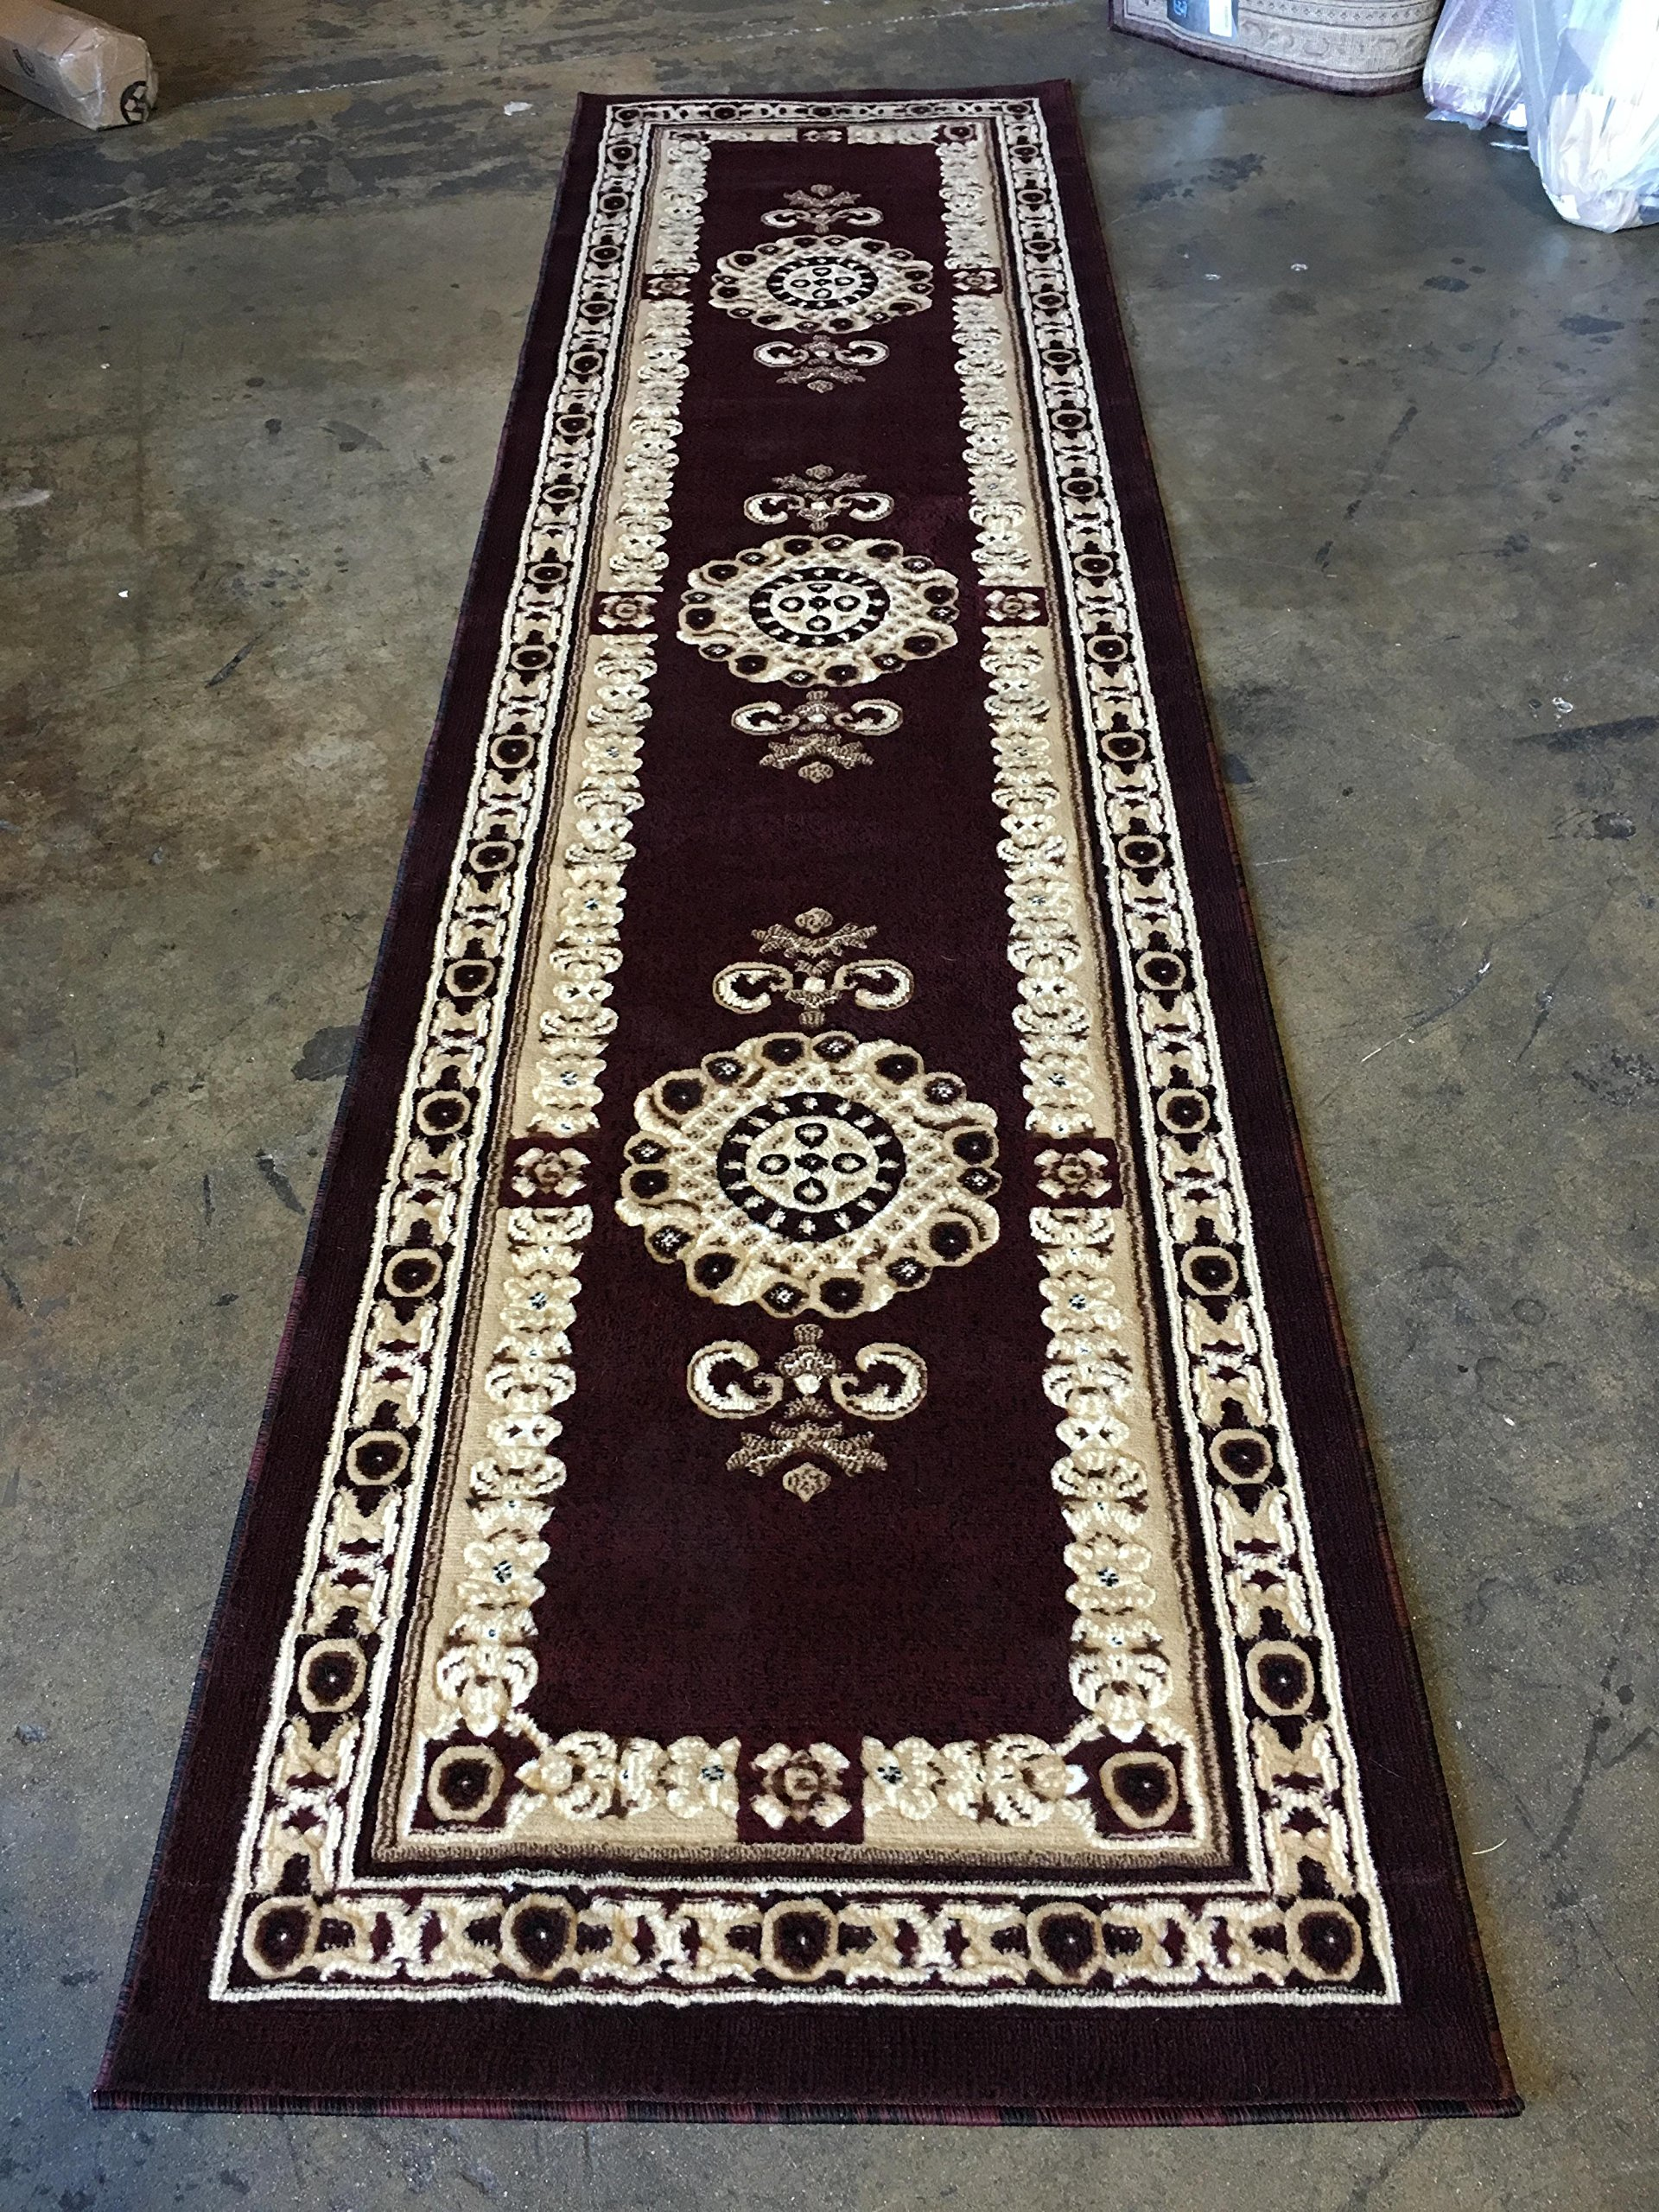 Americana Traditional Long Persian Runner Area Rug Burgundy Design 121 (32 Inch X 10 Feet) - Traditional Long Persian Runner Rug Burgundy Design 121 Americana (32 inch x10 feet ) Quality textured machine made traditional design with Burgundy, brown, black and beige. Easy to clean (stain resistant and soil proof)and very durable. - runner-rugs, entryway-furniture-decor, entryway-laundry-room - A1a4wtzOIeL -